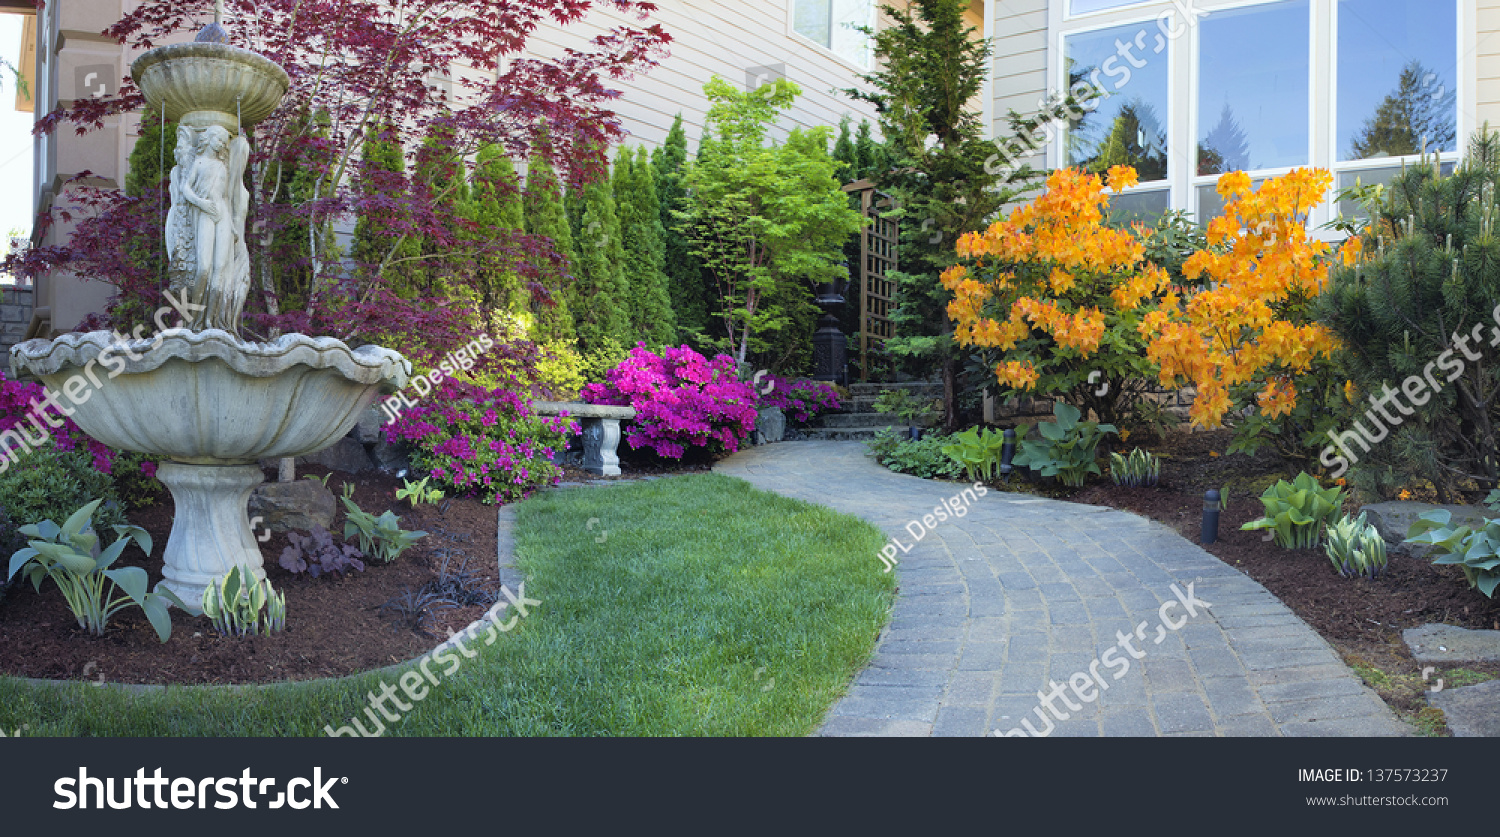 Frontyard Landscaping With Water Fountain And Brick Pavers Path With Azalea  Flowers In Bloom